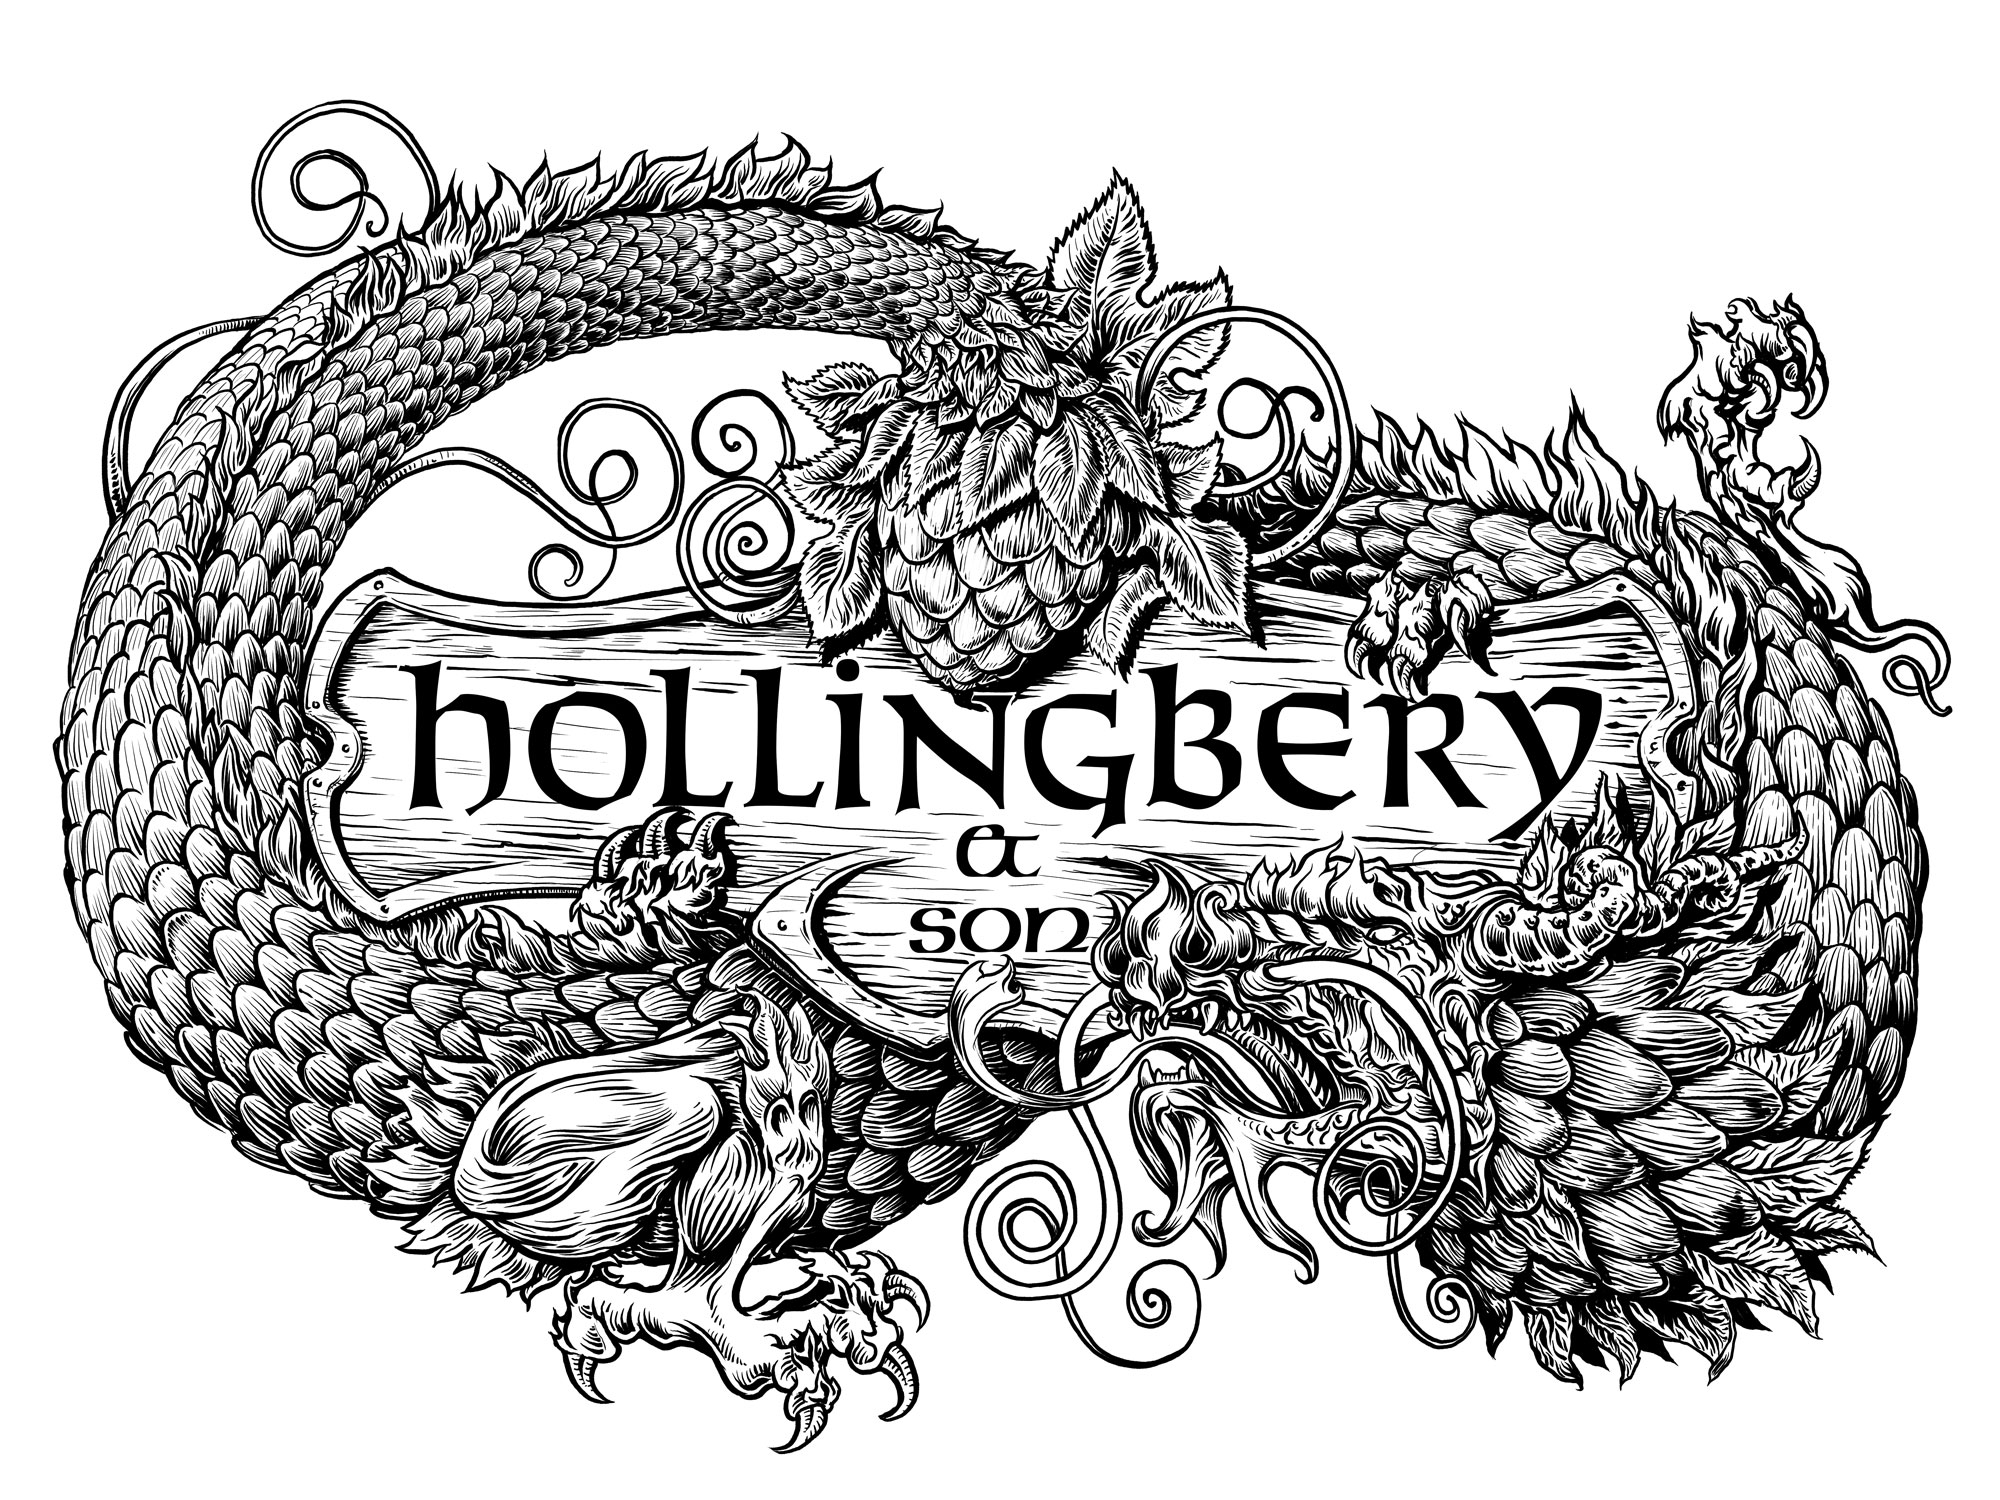 Hollingbery-Hop-Dragon.jpg